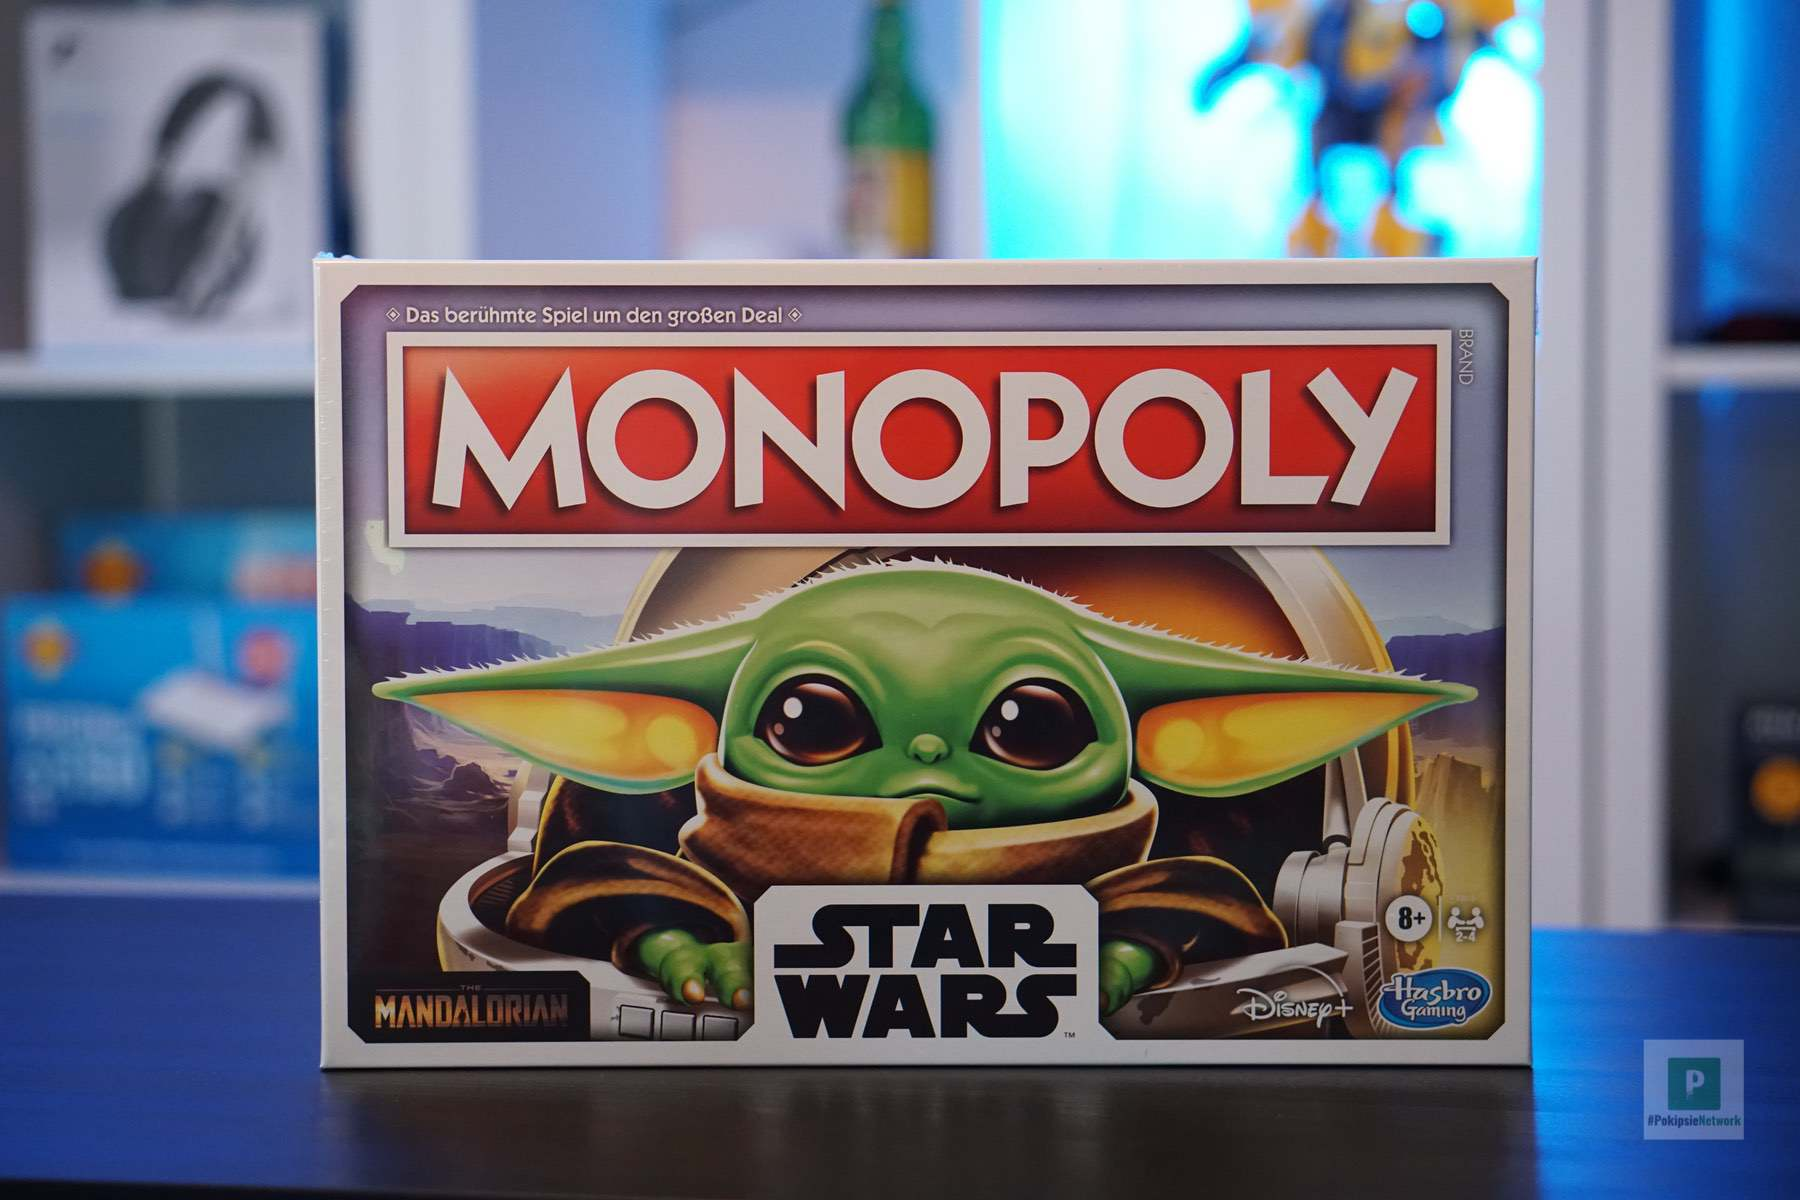 Hasbro - Monopoly - Star Wars The child